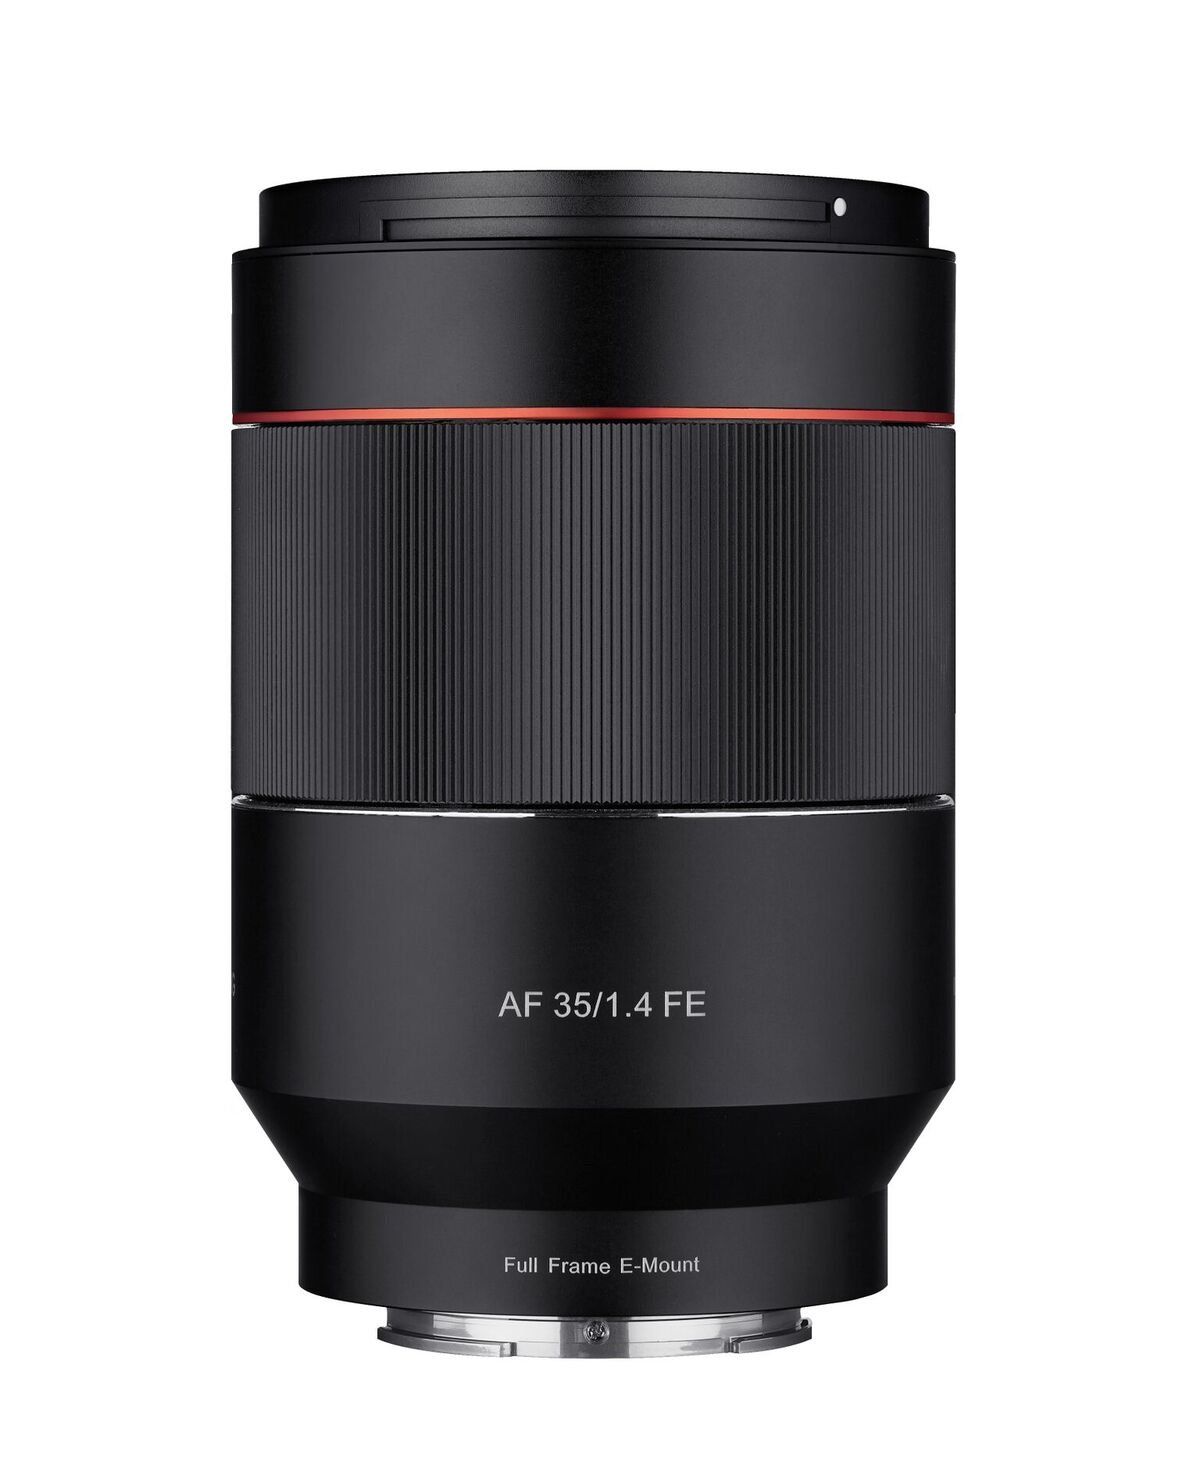 Amazon.com : Rokinon AF 35mm f/1.4 Auto Focus Wide Angle Full Frame ...